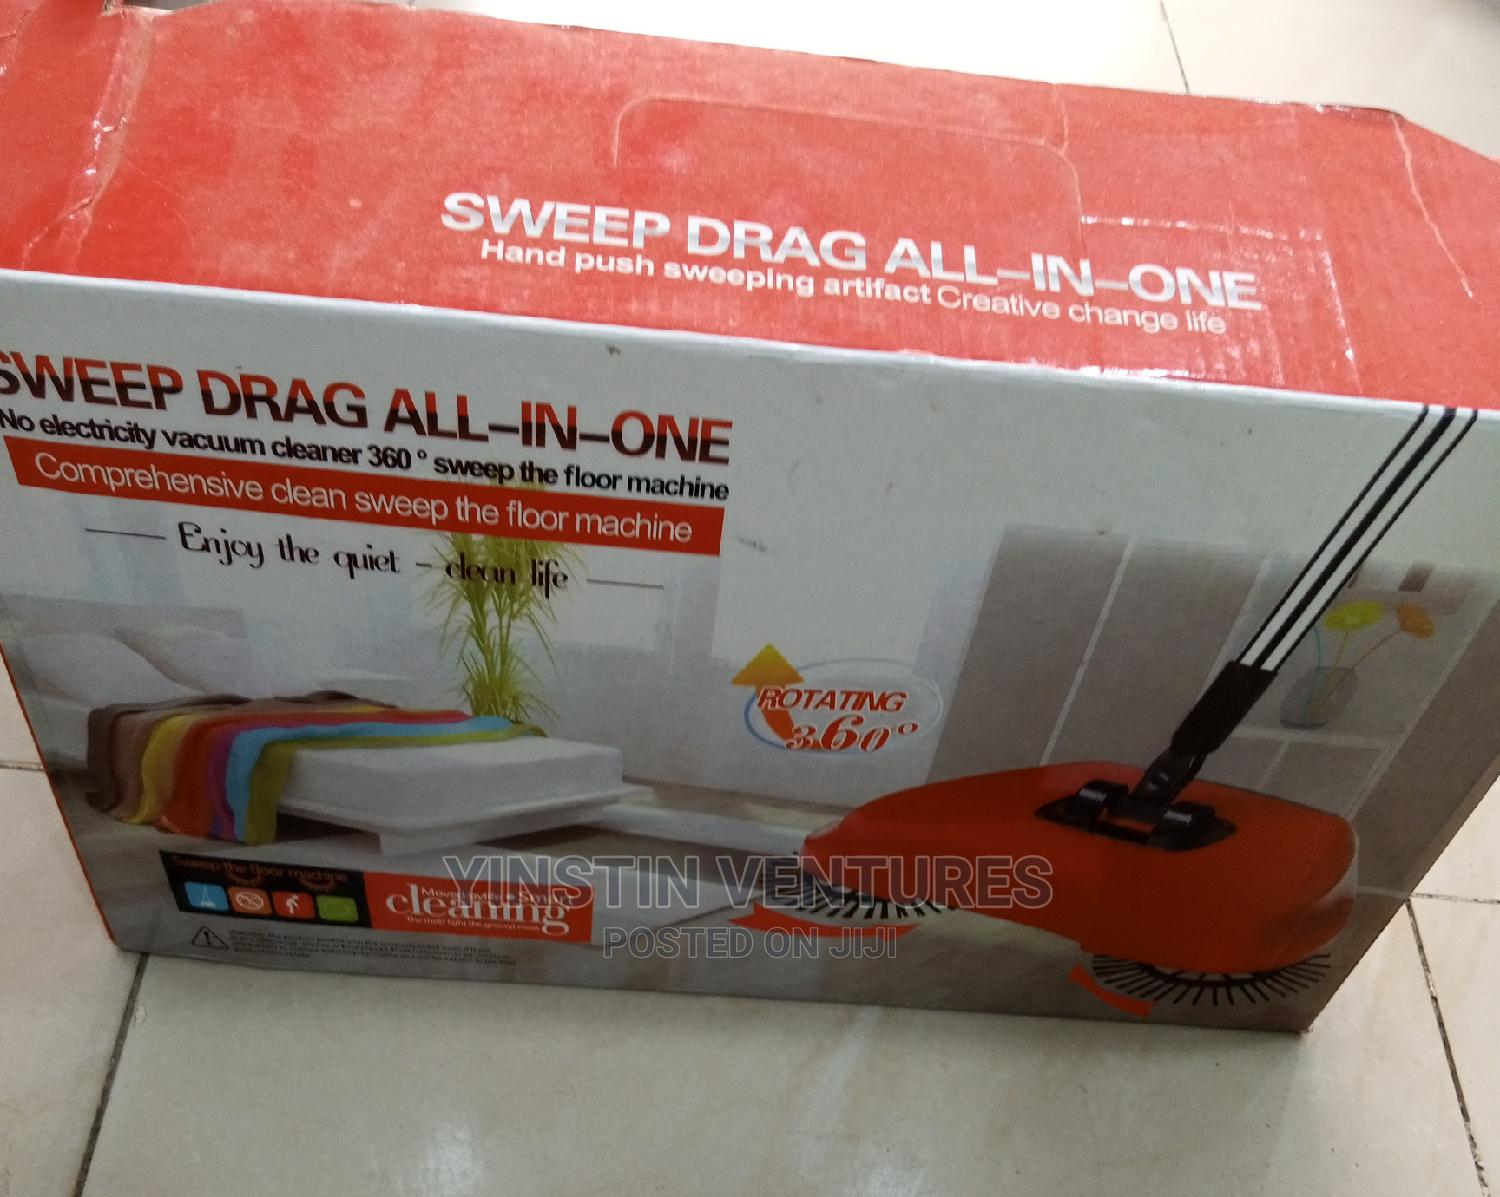 Sweep Drag All-In-One